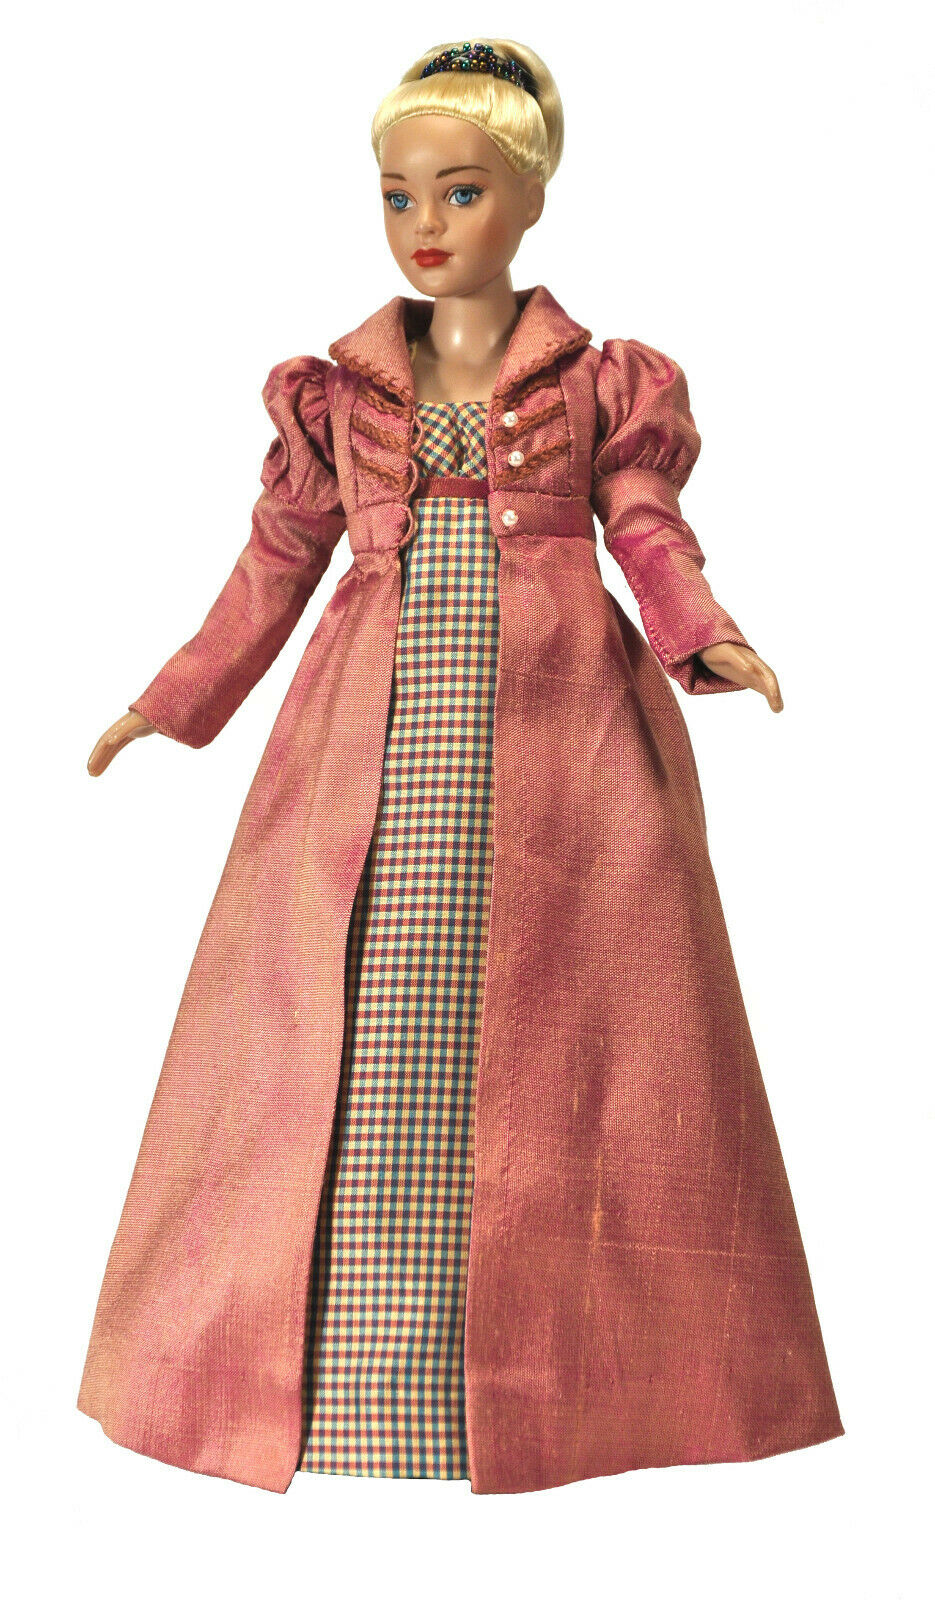 Boneka Seidenmantel  Silk Regency Coat for 10   27cm fashion doll